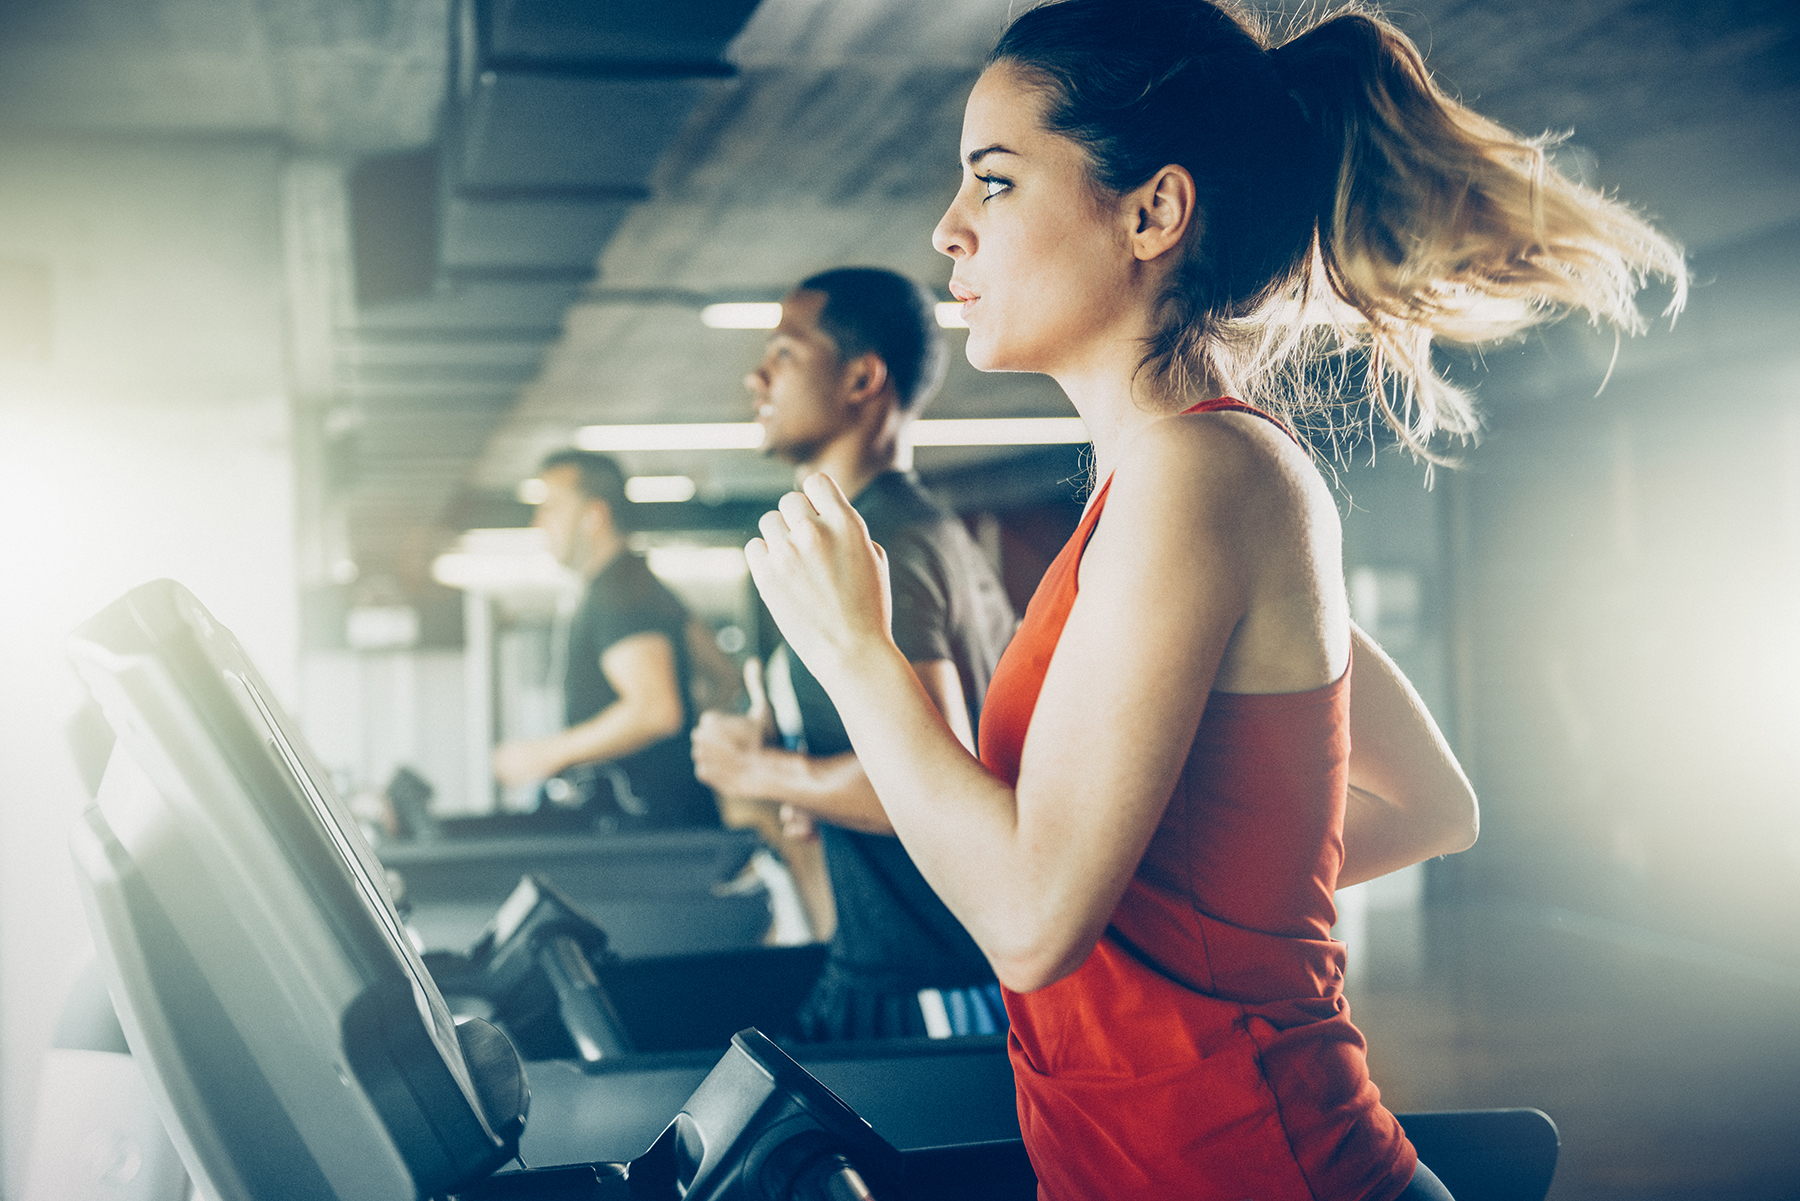 Woman with ponytail running on treadmill